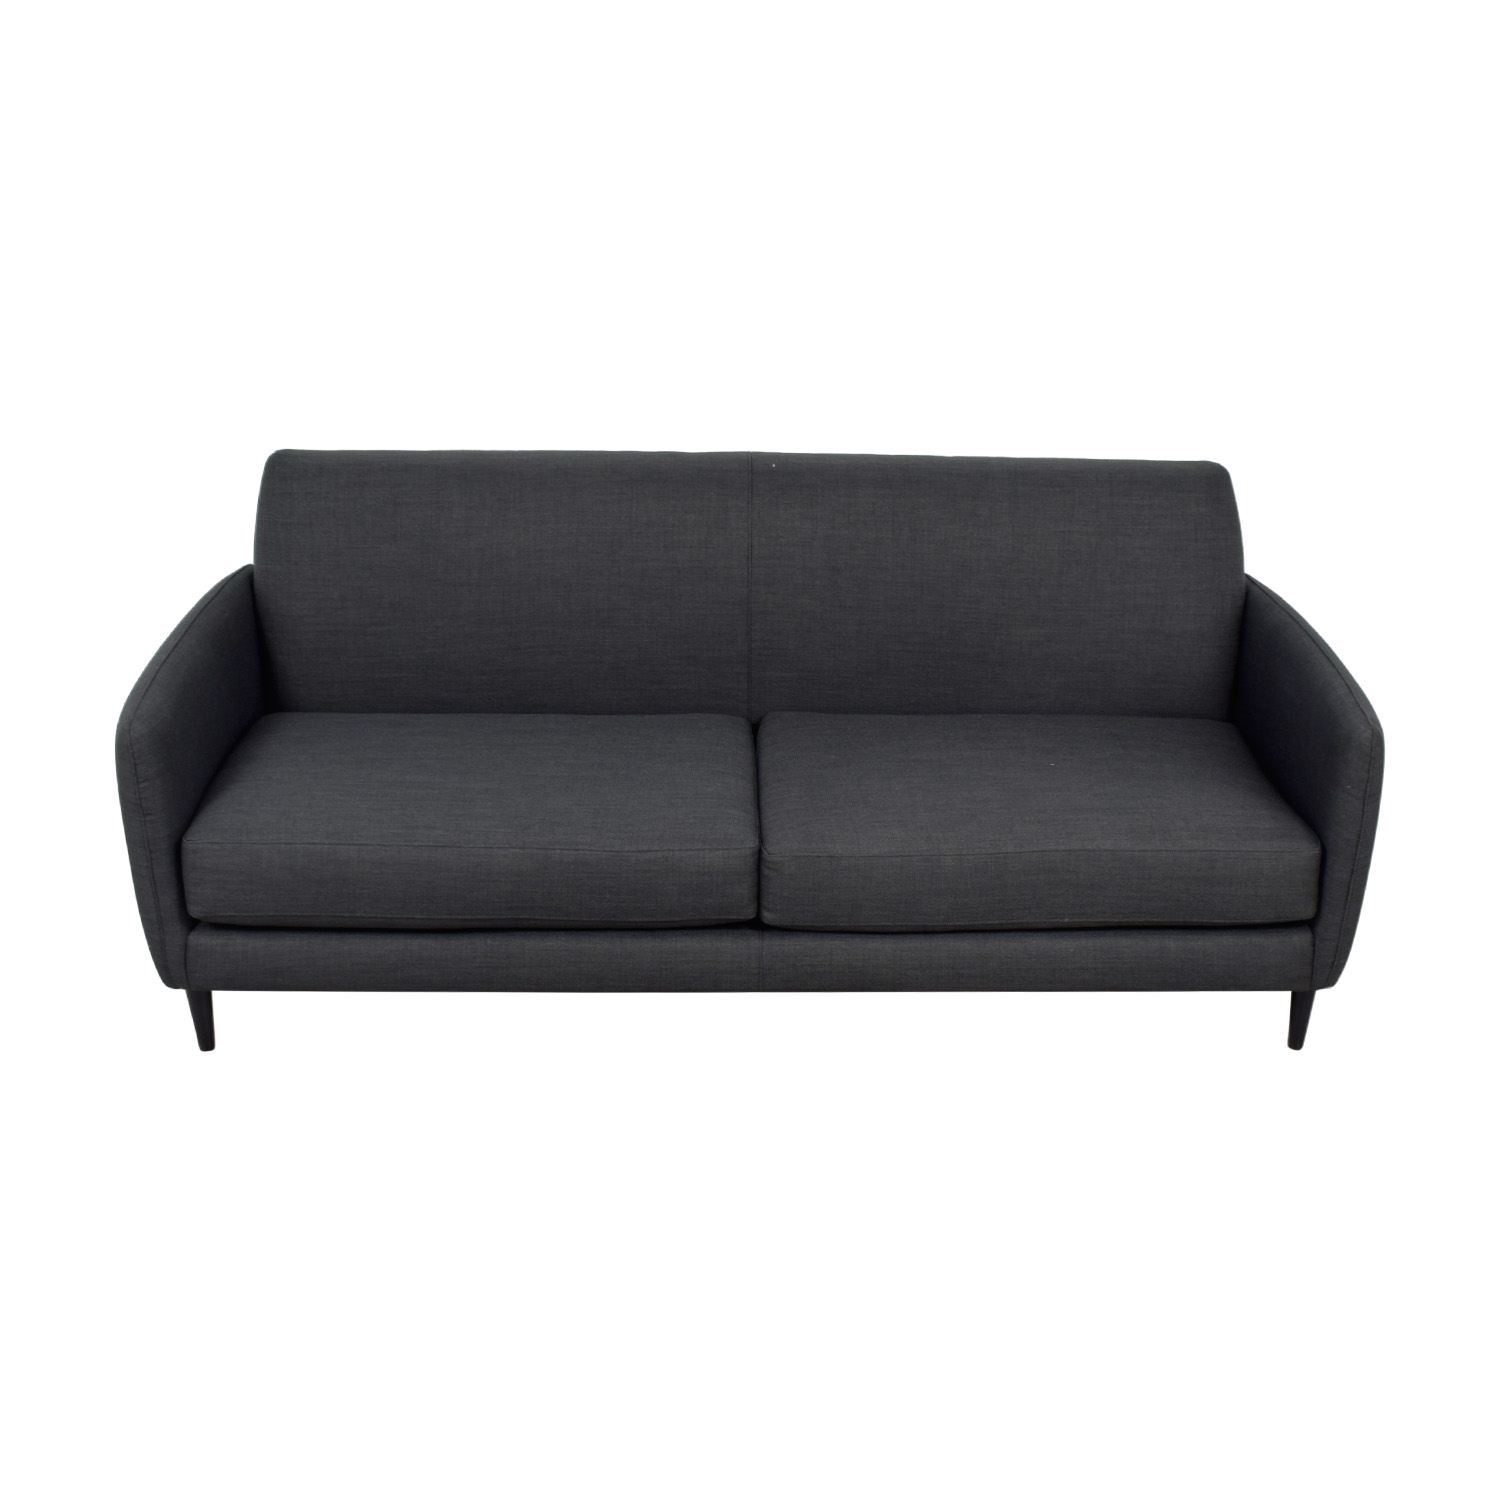 buy CB2 Parlour Grey Two-Cushion Sofa CB2 Sofas